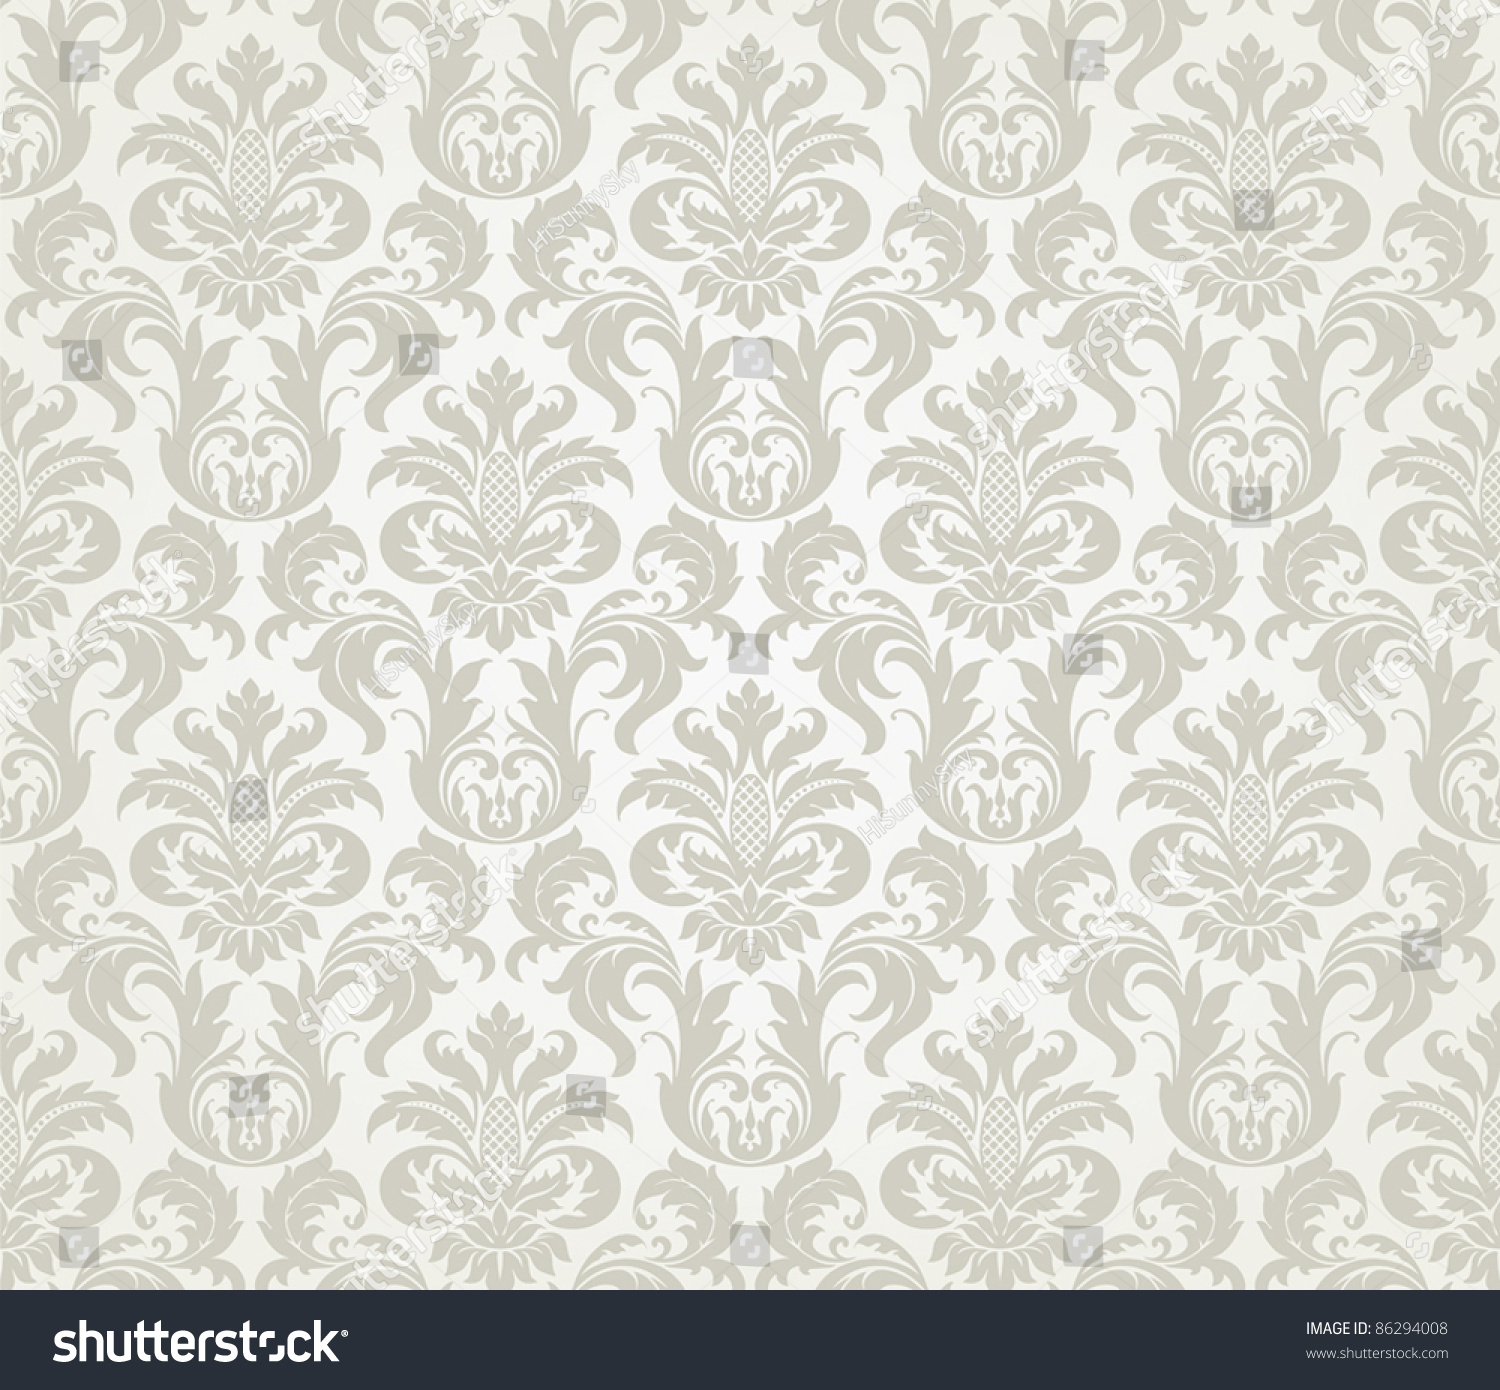 Vector seamless floral damask pattern wedding stock vector vector seamless floral damask pattern for wedding invitation or vintage abstract background stopboris Image collections